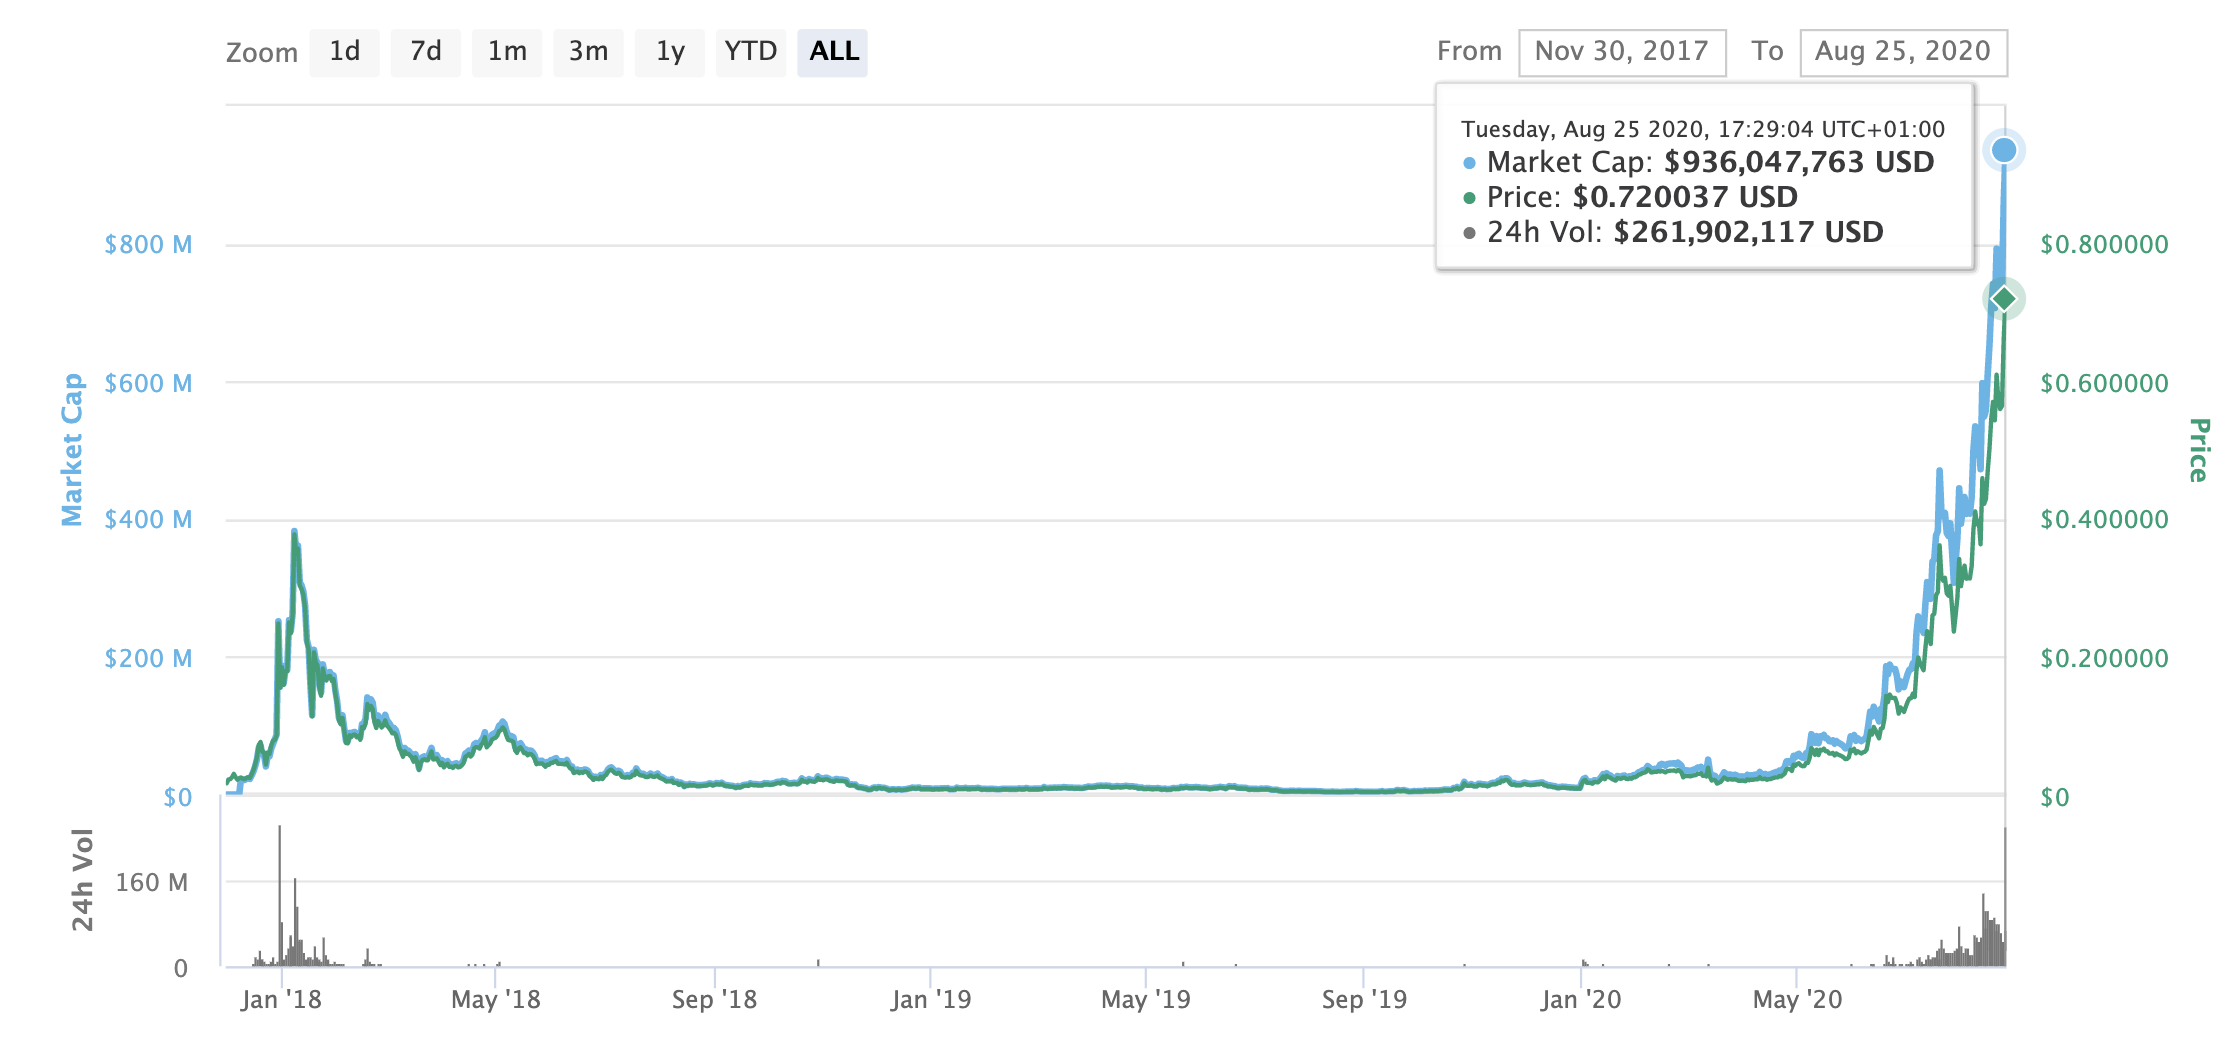 Aave price and market cap, August 2020